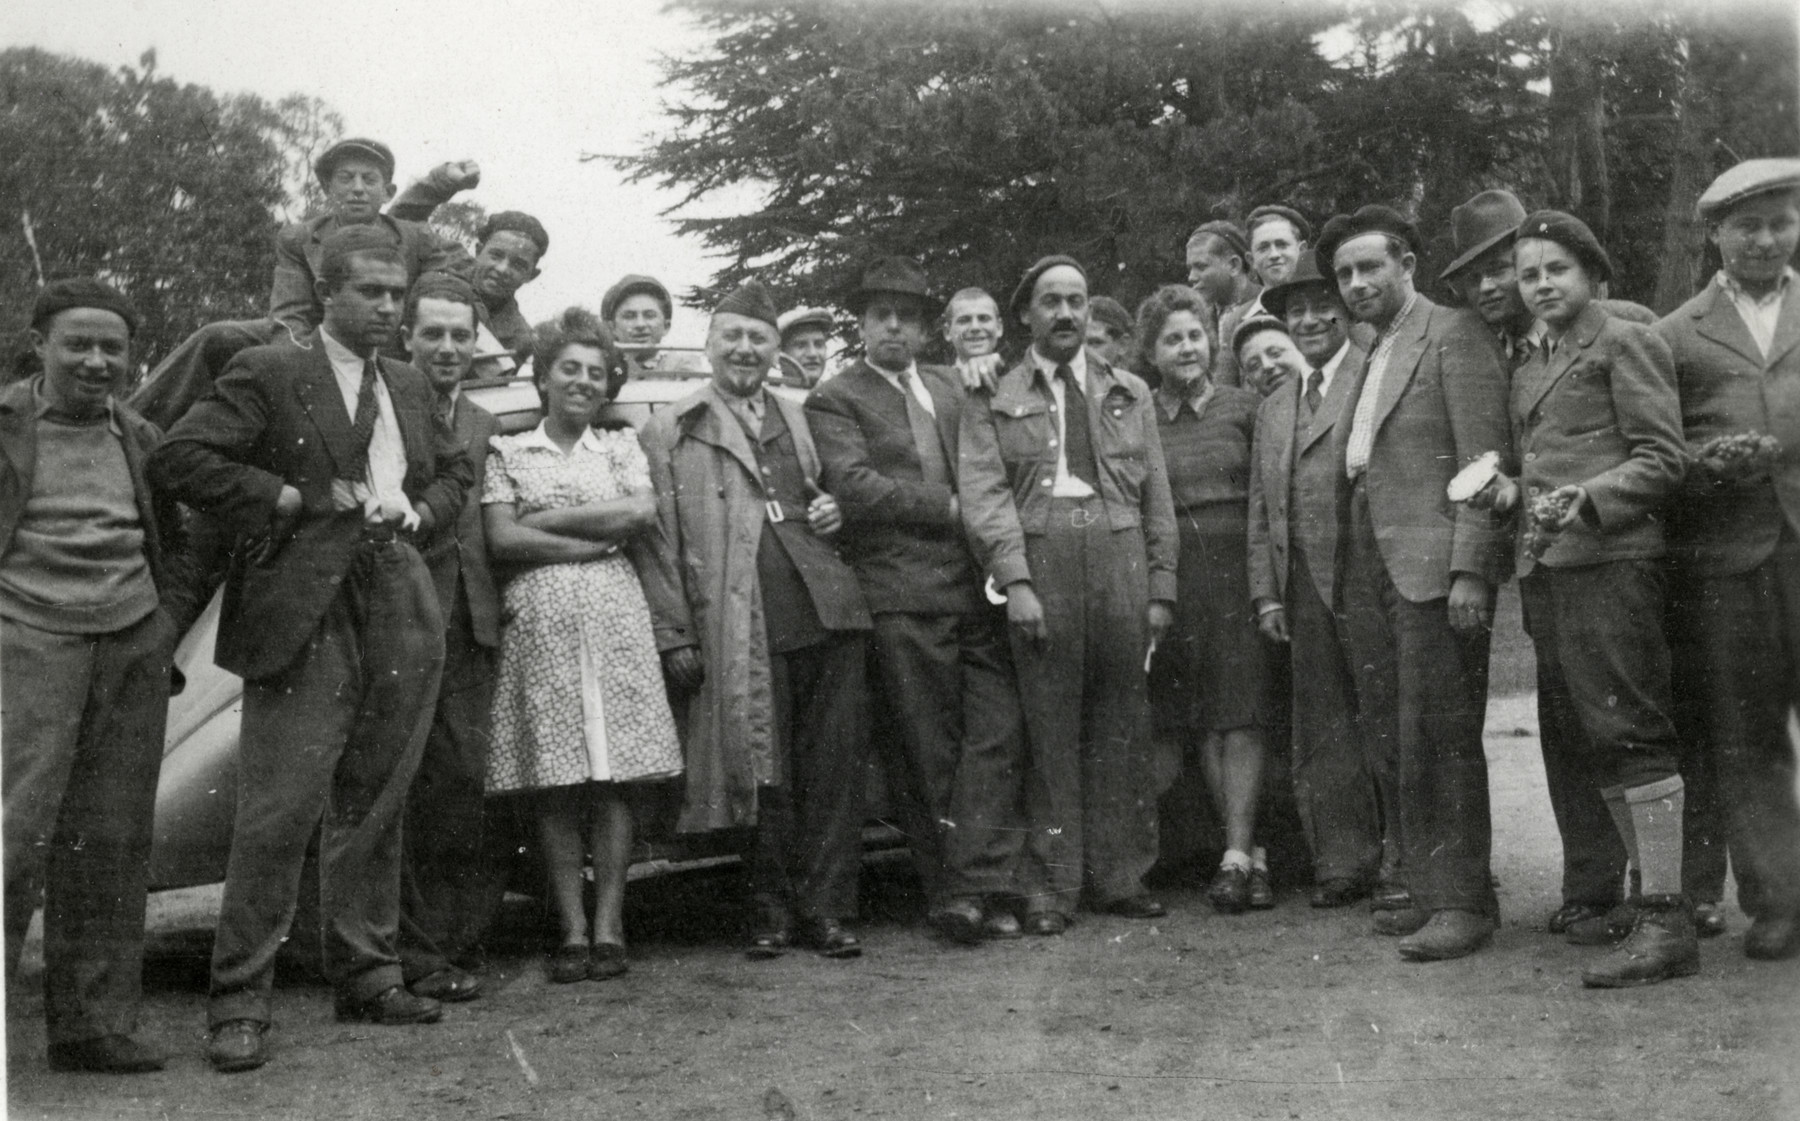 Staff and teenagers pose on the grounds of the Ambloy children's homes during the visit of a British chaplain who was the brother of one of the boys and came to meet him during the Sukkot holiday.  Nina is in front left; Judith Hemmendinger is fouth from the right.  Next to him is Mareplis, the boy who is to meet his brother.  The chaplain is pictured in the center, wearing a beret and short battle jacket.